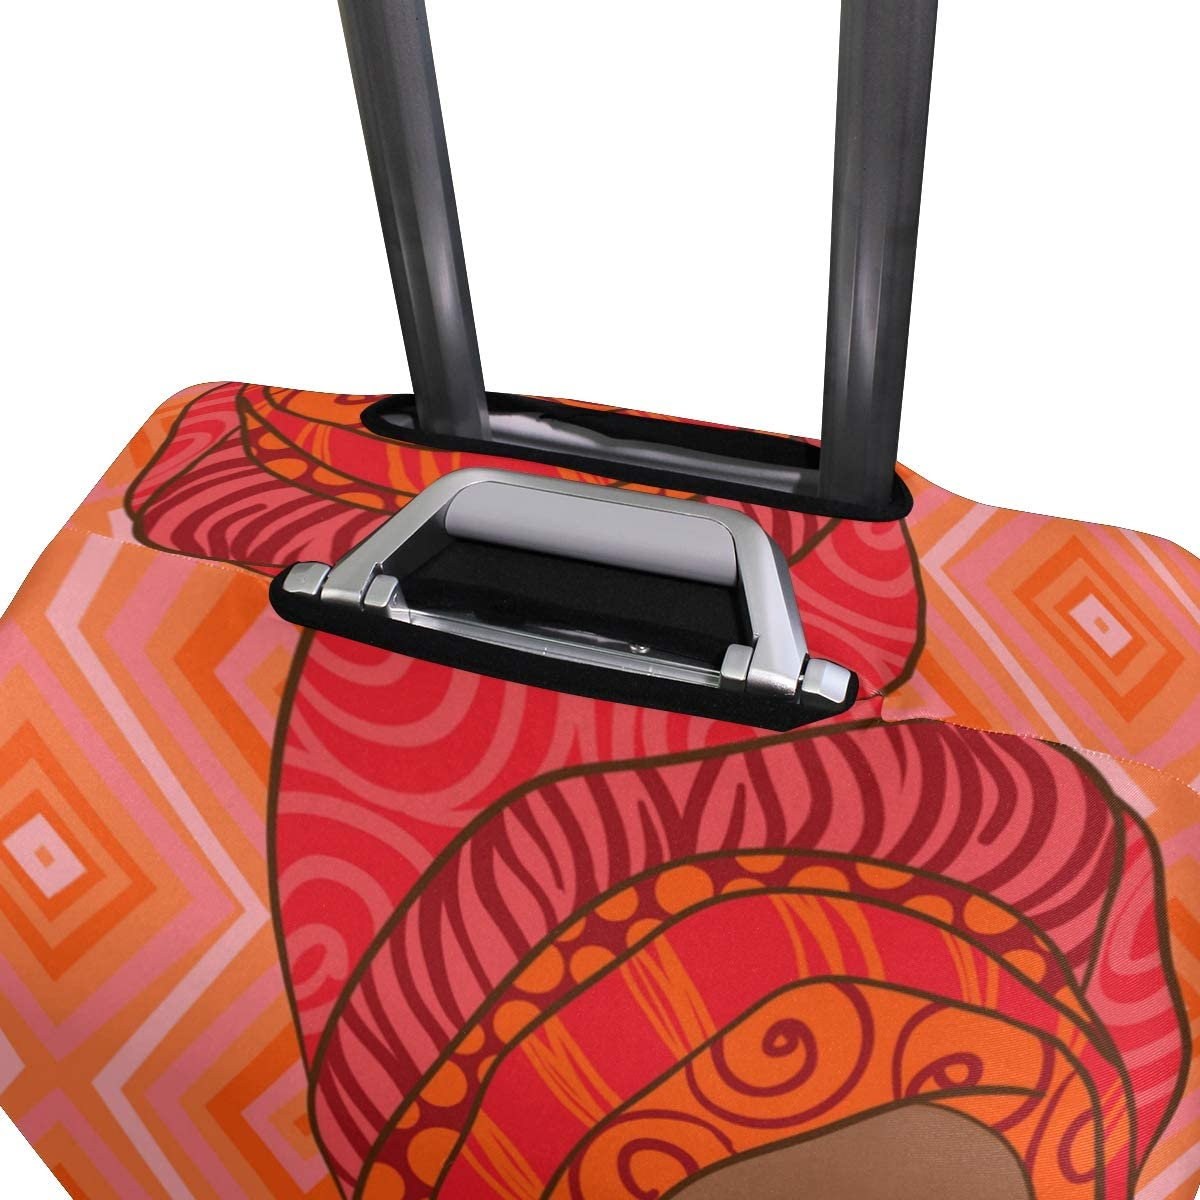 Baggage Covers African Black Women Paint Gemeotric Washable Protective Case